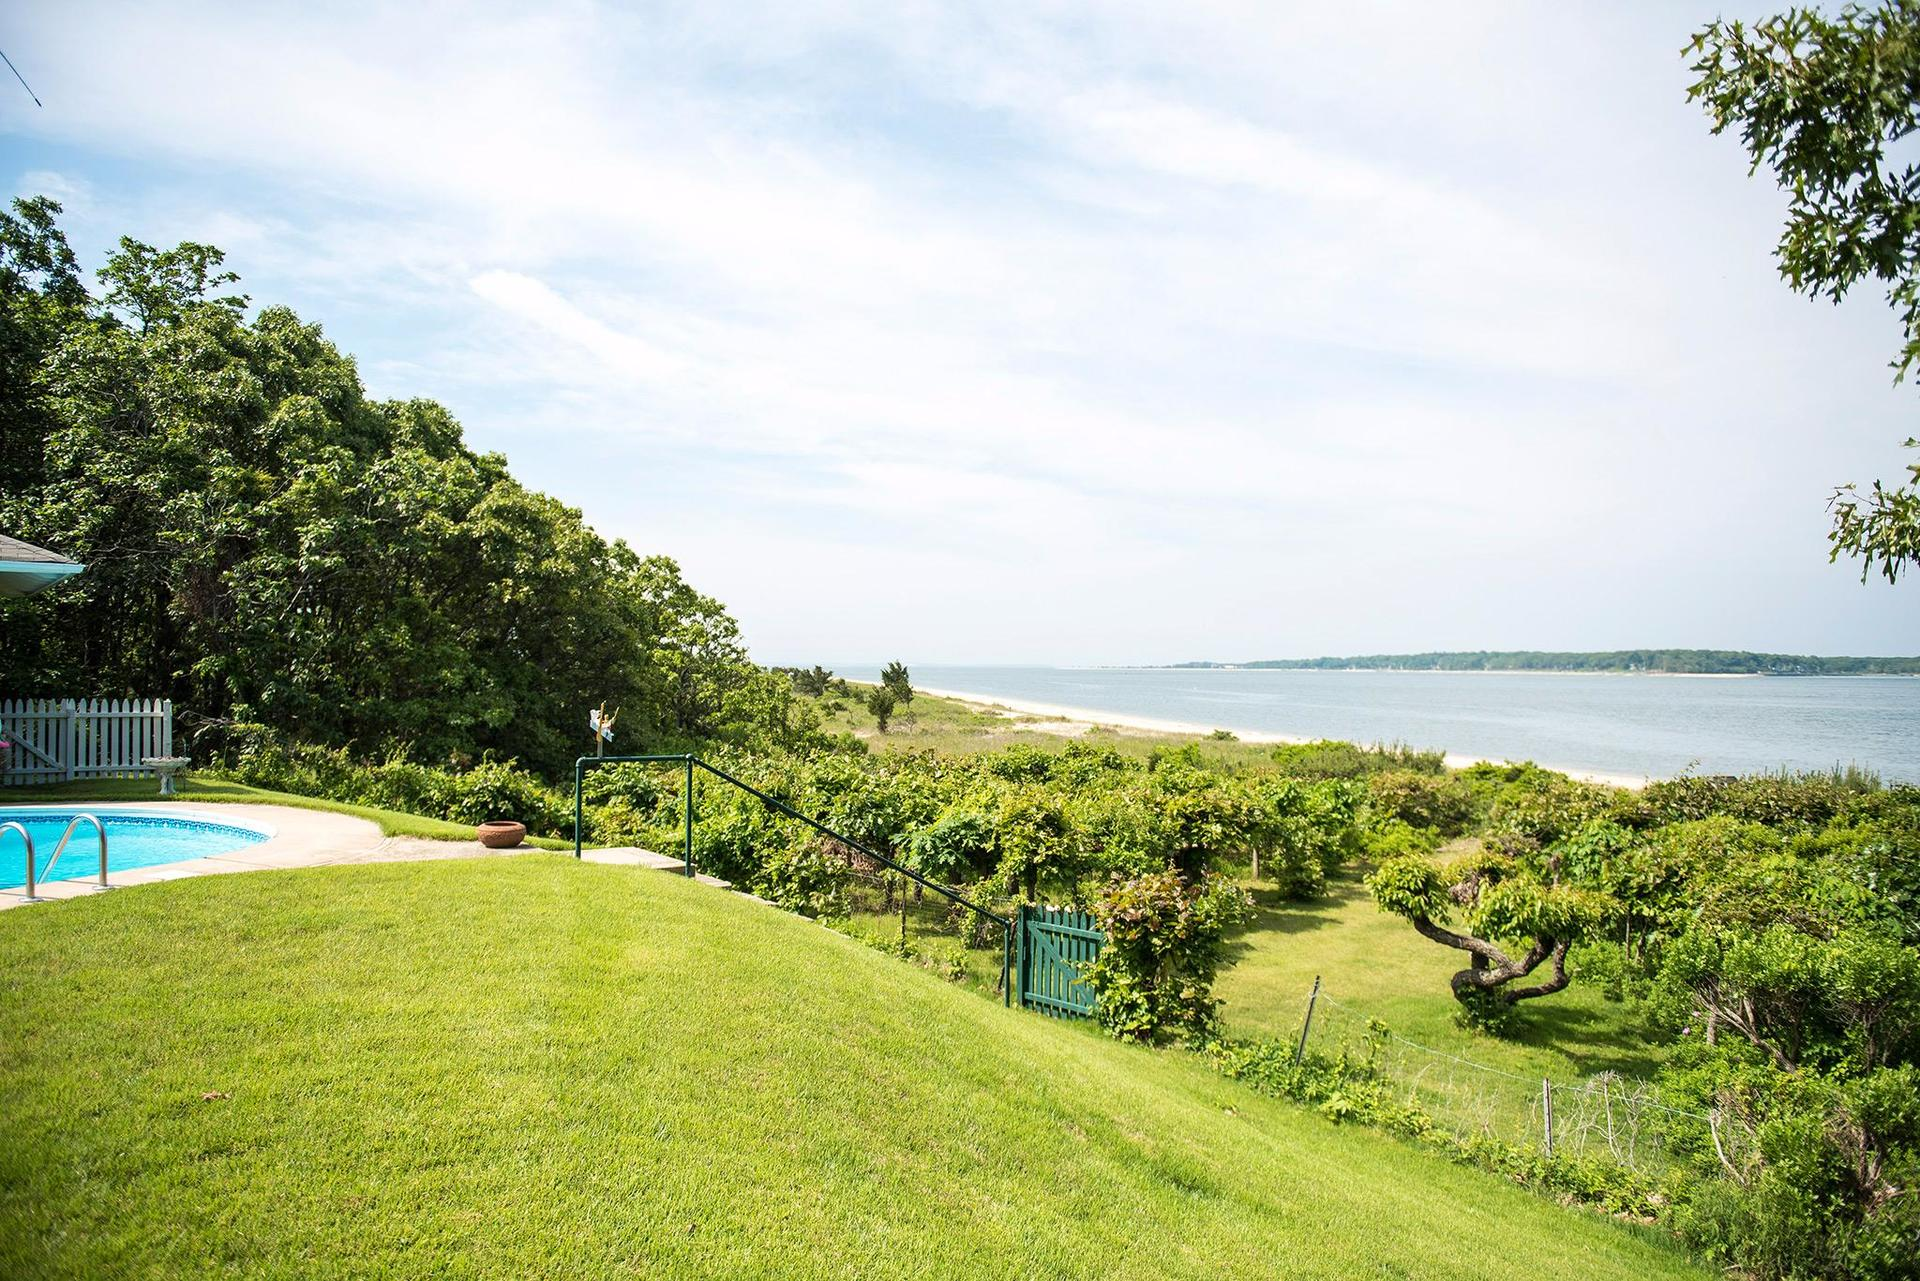 Additional photo for property listing at Fabulous Shelter Island Sandy Beach House With Pool  Shelter Island, Nueva York